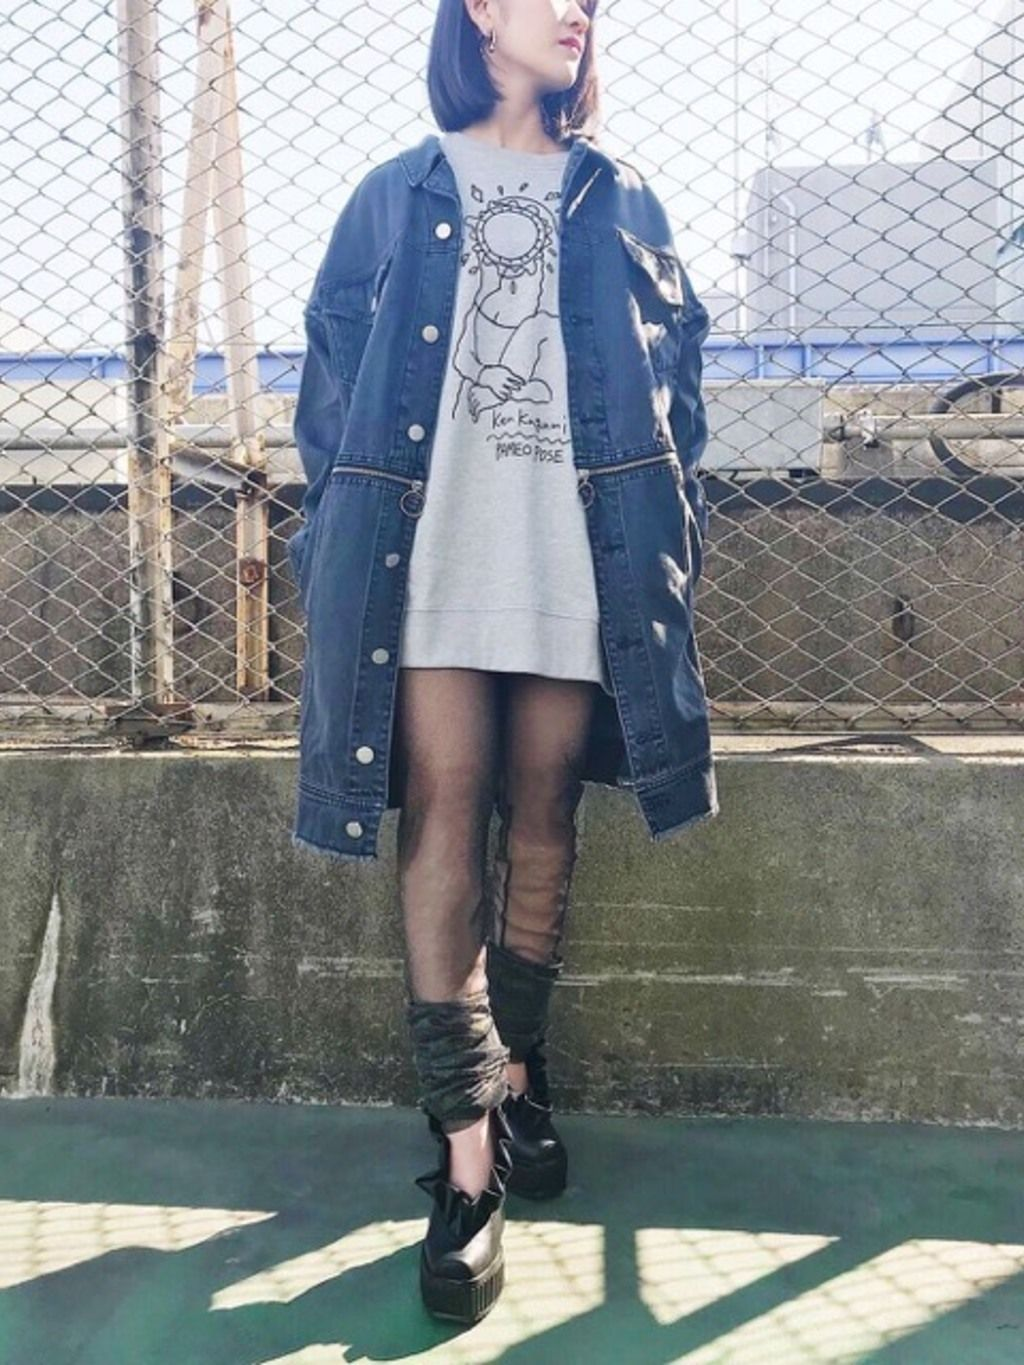 PAMEO POSE(パメオポーズ) |3 WAY BIG DENIM JACKET コーデ02